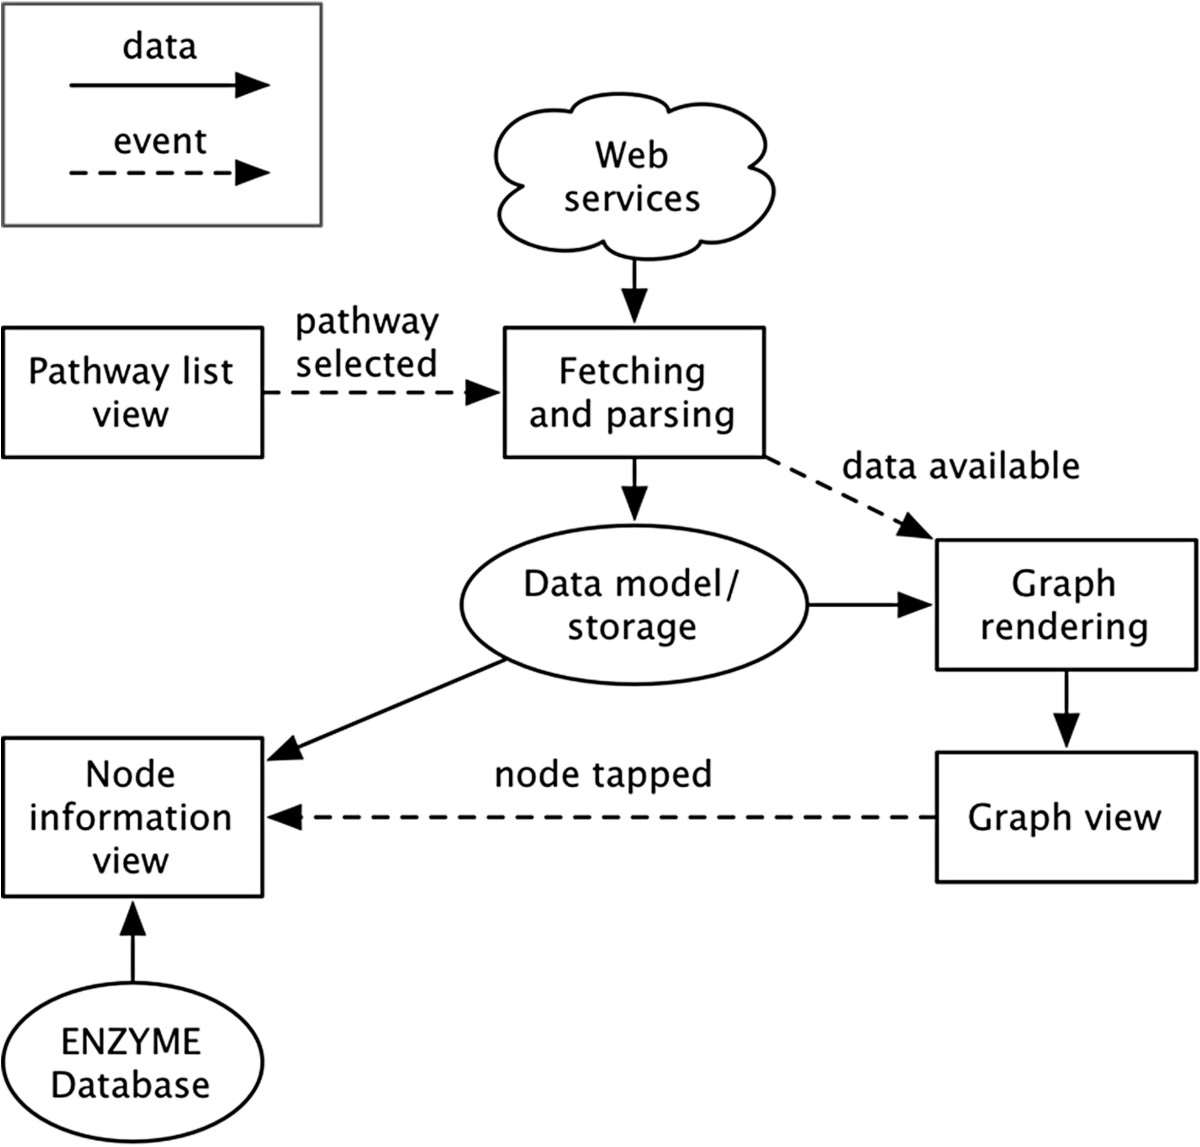 http://static-content.springer.com/image/art%3A10.1186%2F2047-2501-1-4/MediaObjects/13755_2012_Article_4_Fig9_HTML.jpg